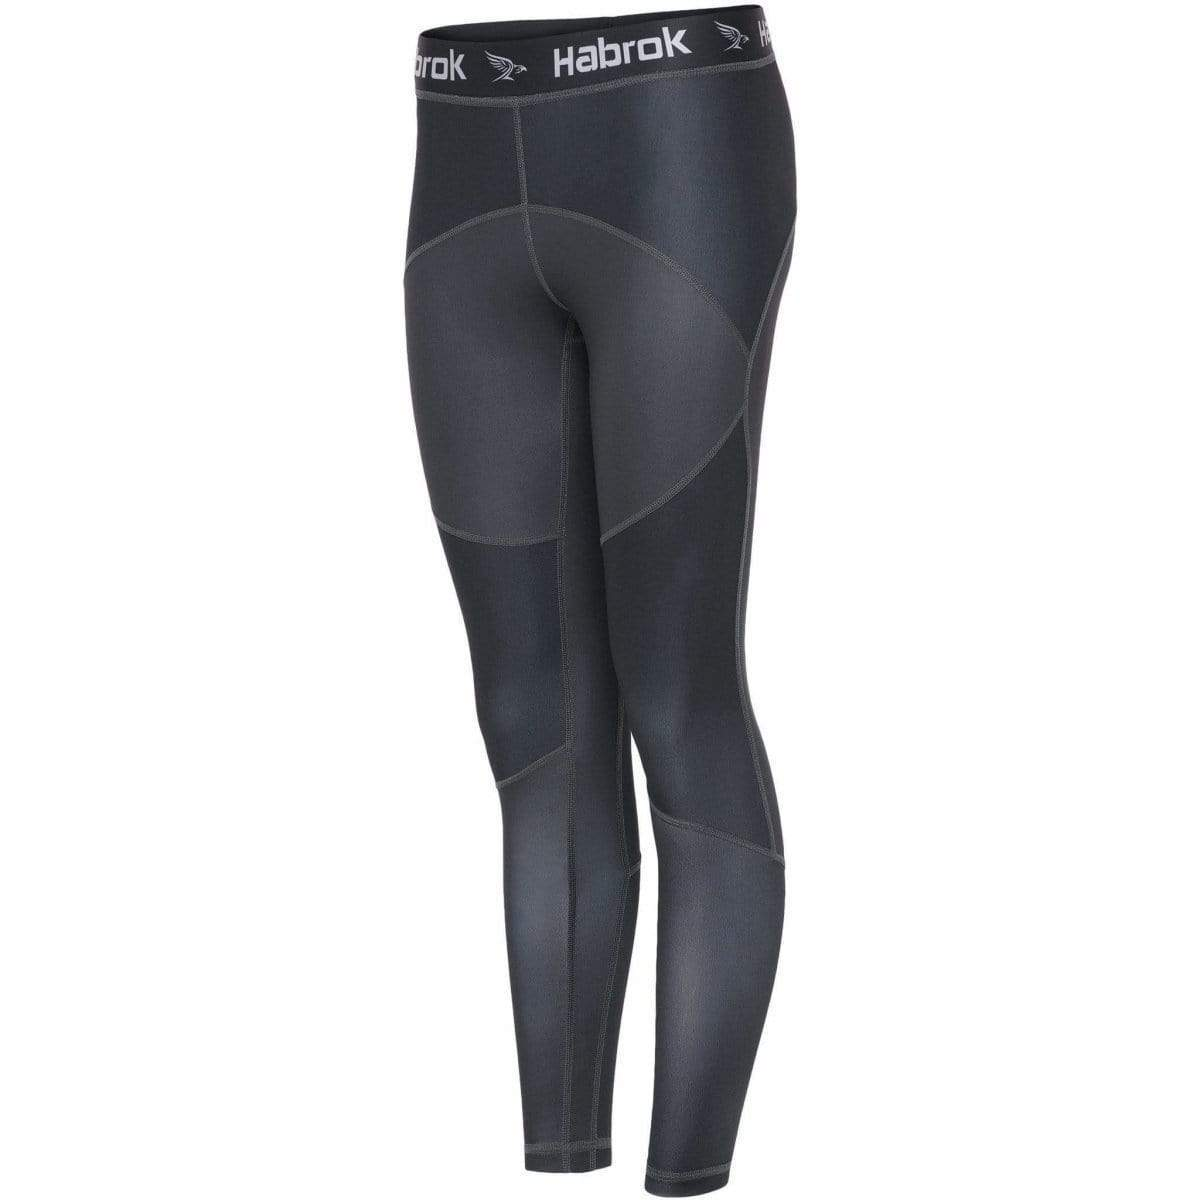 Habrok Spats XS / GREY Pugnator | Compression Pants | Women